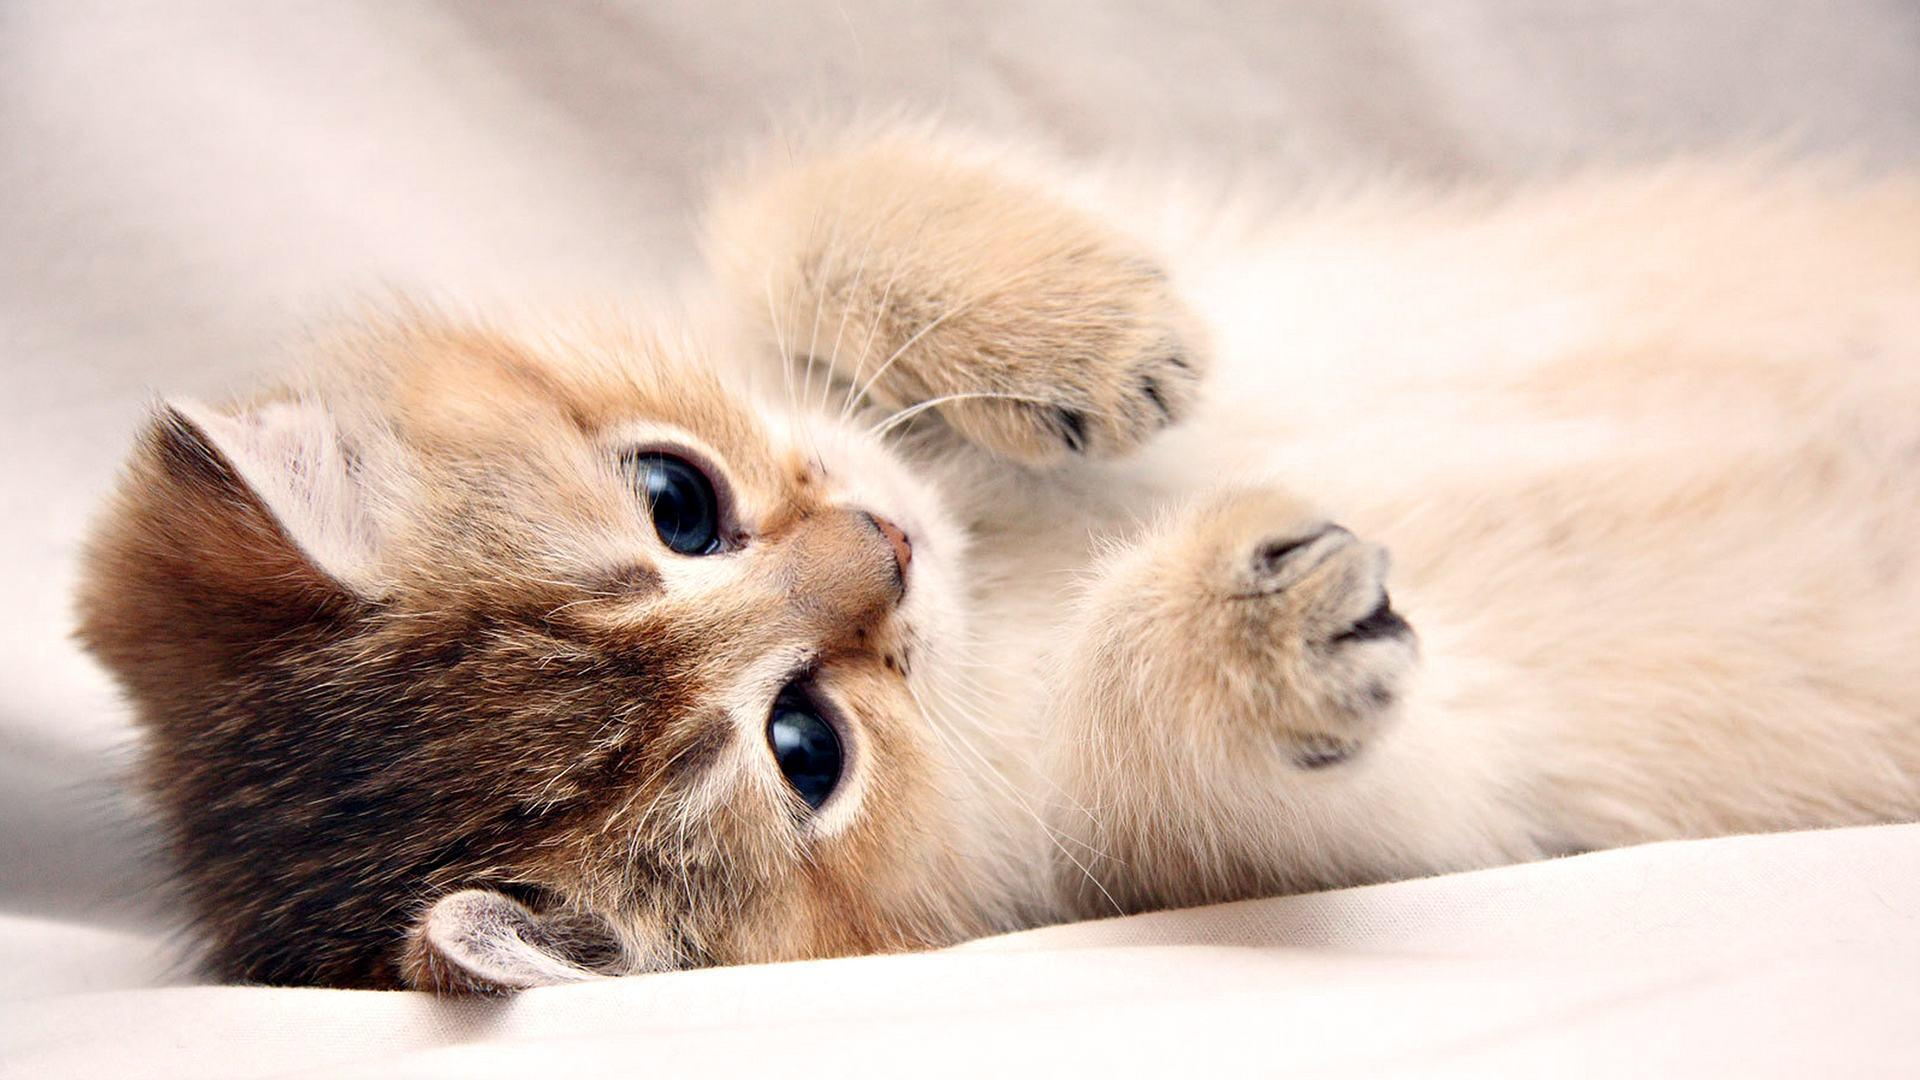 Cute wallpapers for laptop wallpaper cave - Cute wallpapers for a laptop ...